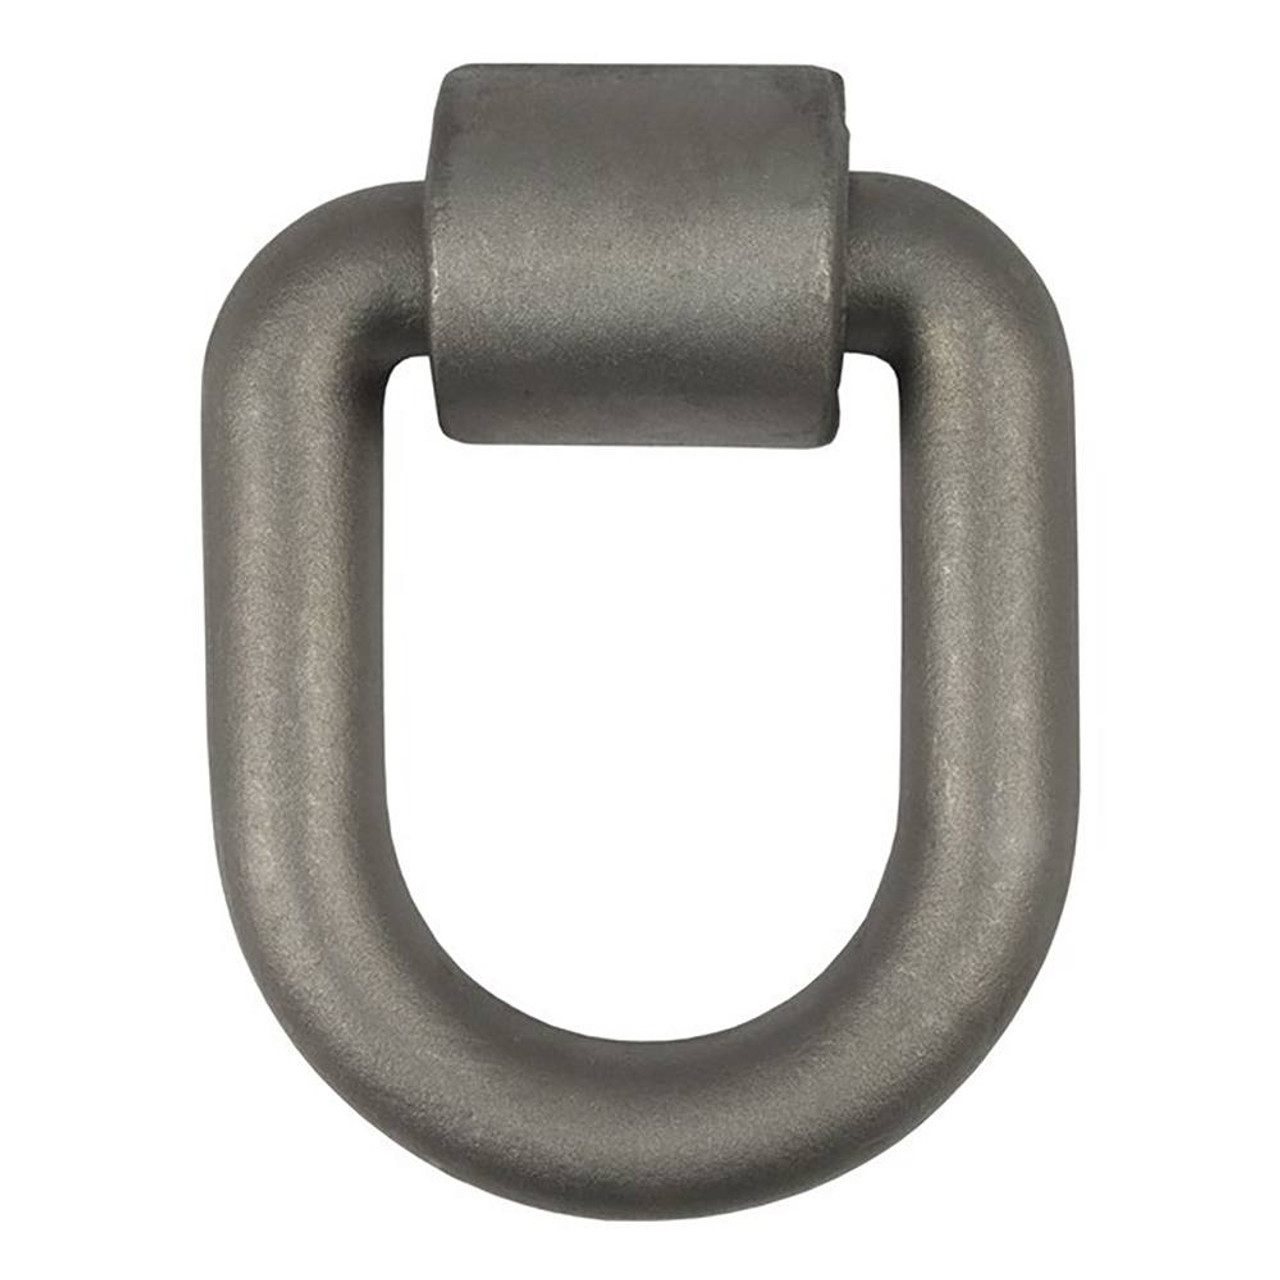 Forged D-Ring/Brackets- Bulk- Raw Finish- 46760lbs. Capacity- 1/5/6 in.- w/Weld-On 2 in. Wide X 3/8 in. Thick Brackets-